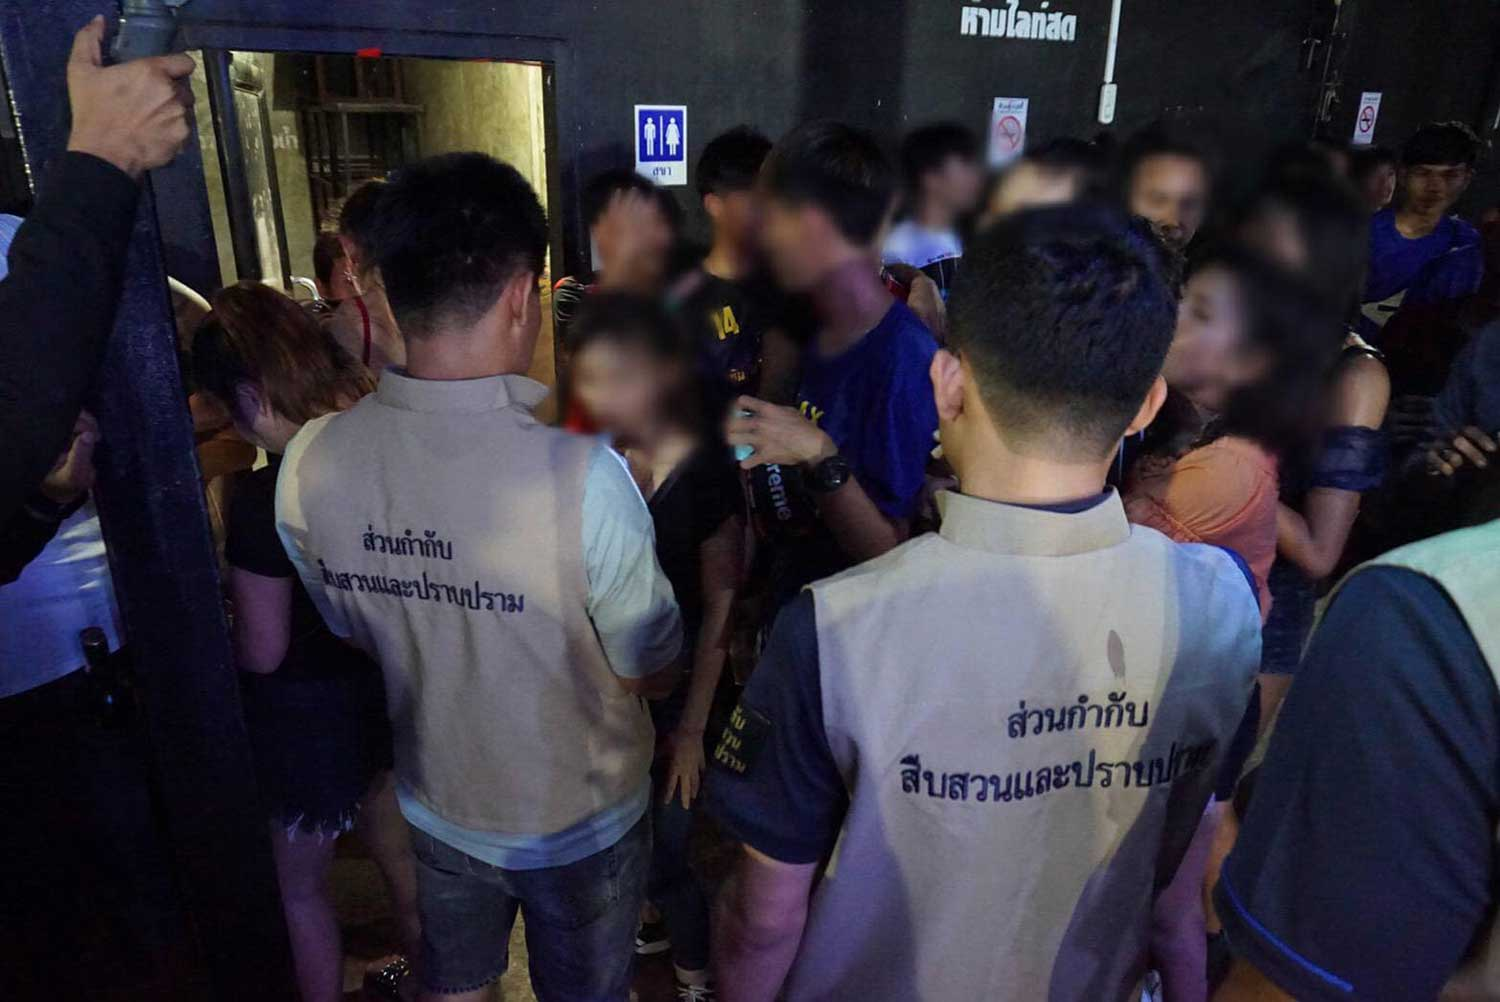 Officials round up patrons, many of them underage, during a raid on Club64 Pub & Restaurant in Sukhothai early Saturday. (Photo from the Facebook page of the Department of Provincial Administration's investigation and suppression office)